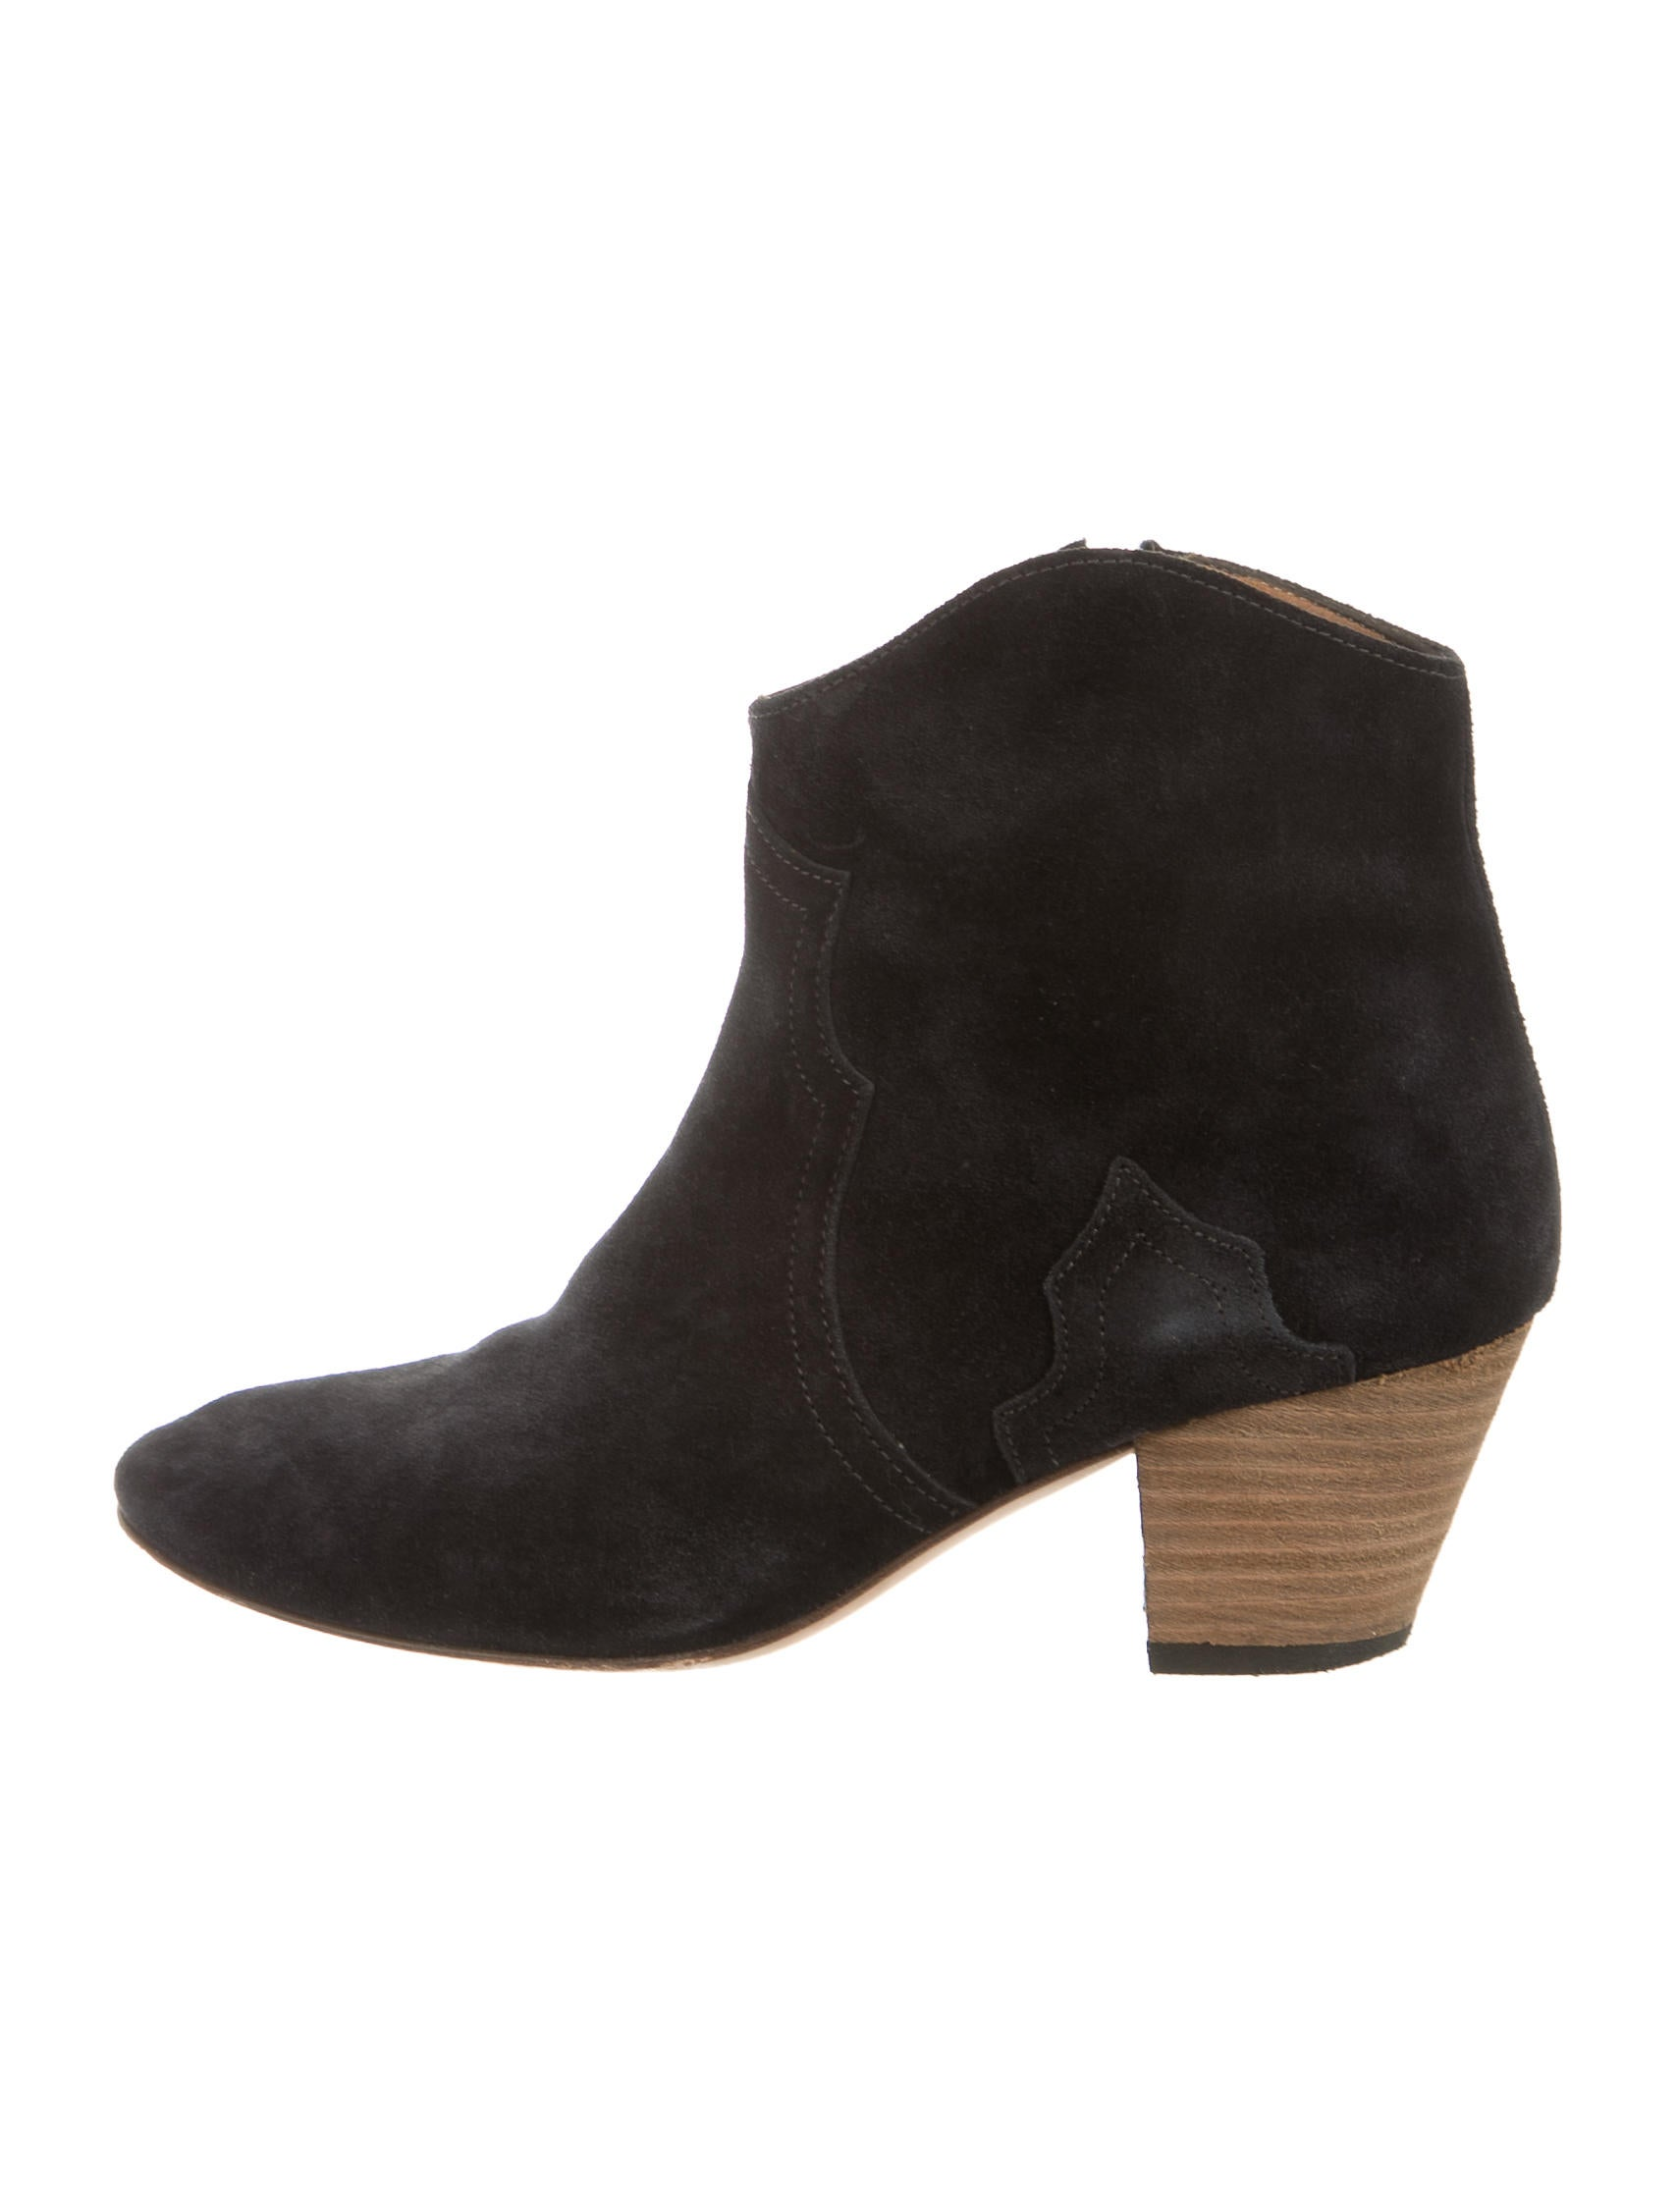 marant dicker suede ankle boots shoes isa34829